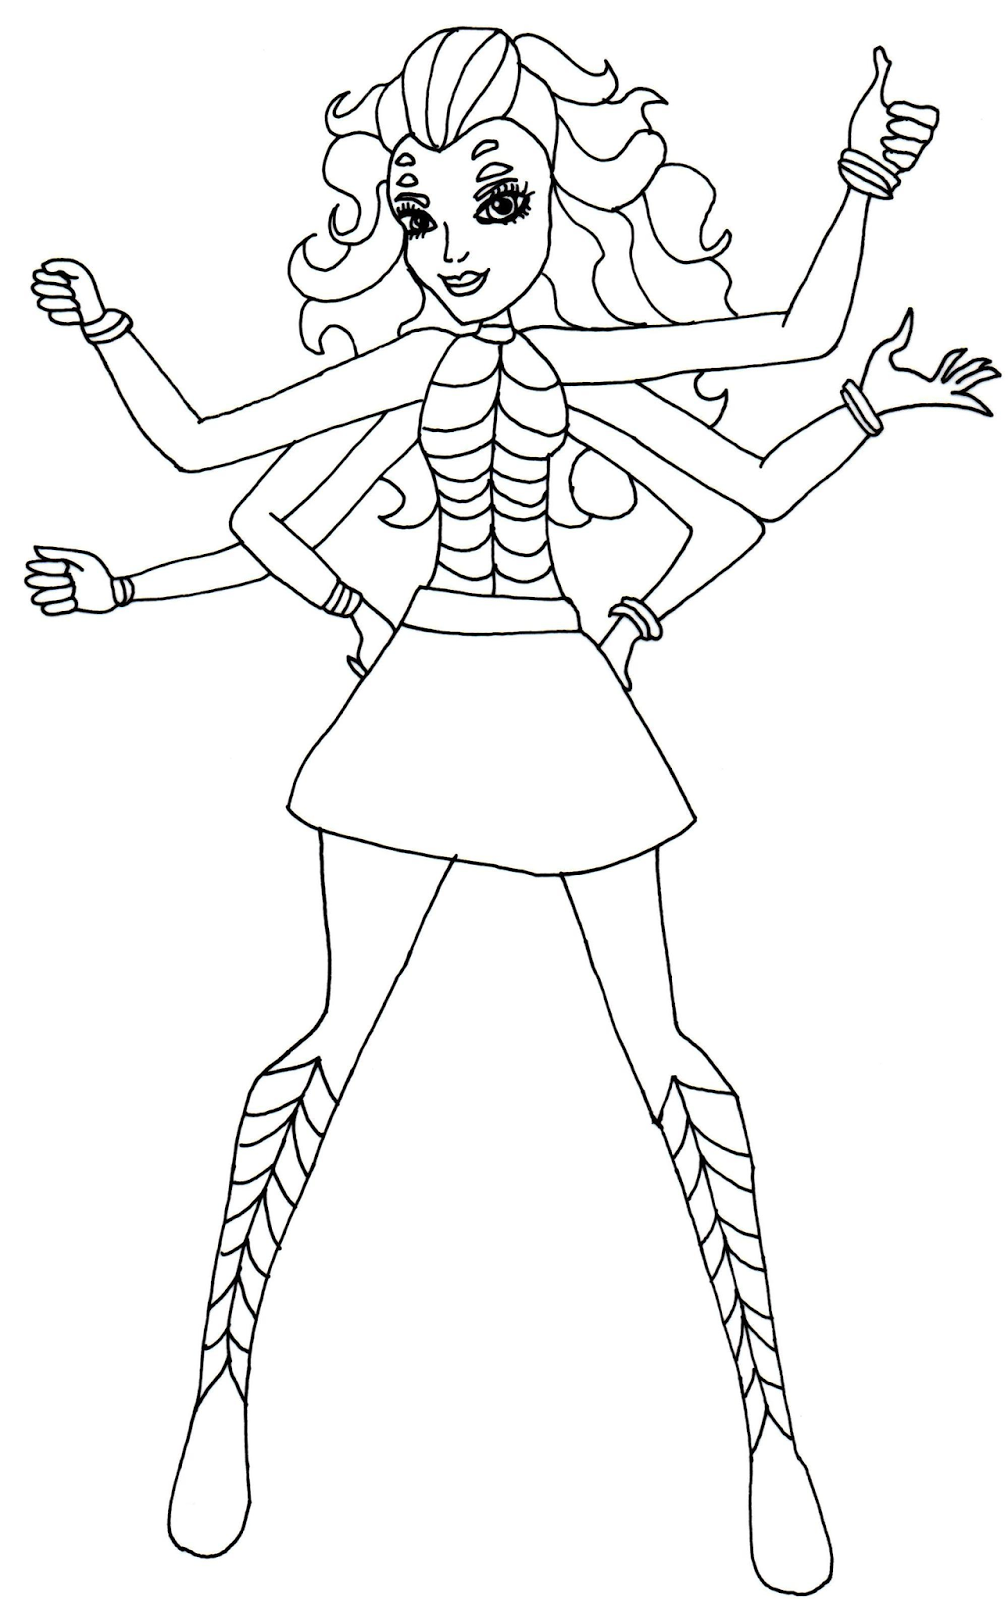 Monster High 45 Printable coloring pages